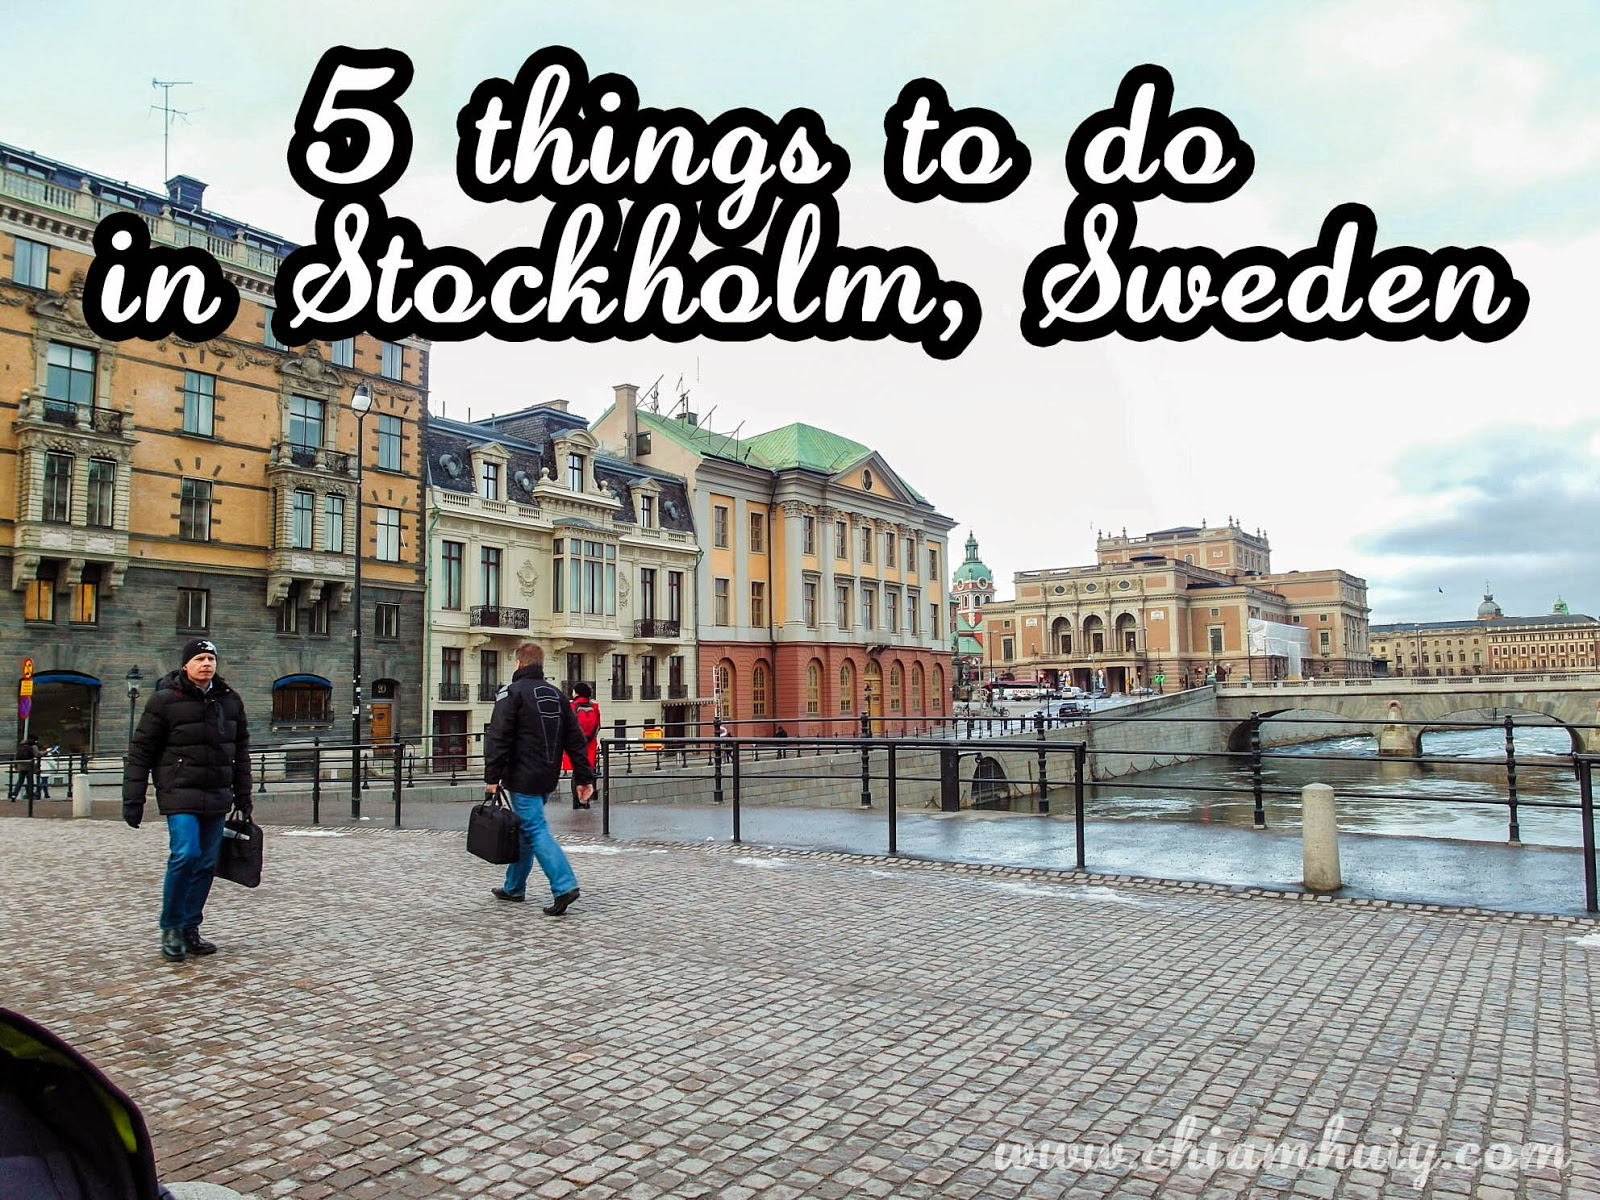 5 things to do in Stockholm, Sweden